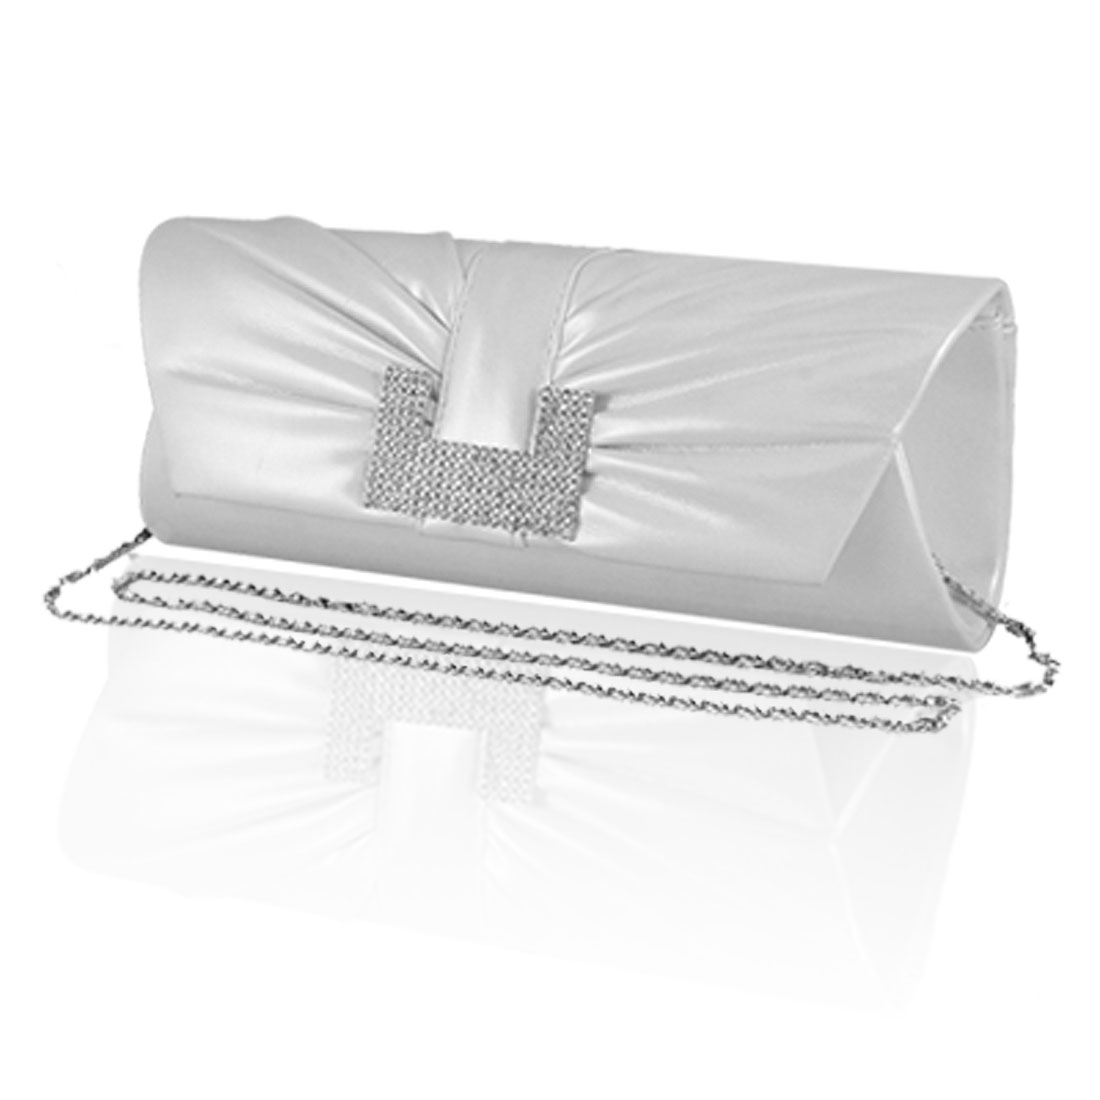 Rhinestone Decor White Faux Leather Evening Hand Bag for Women